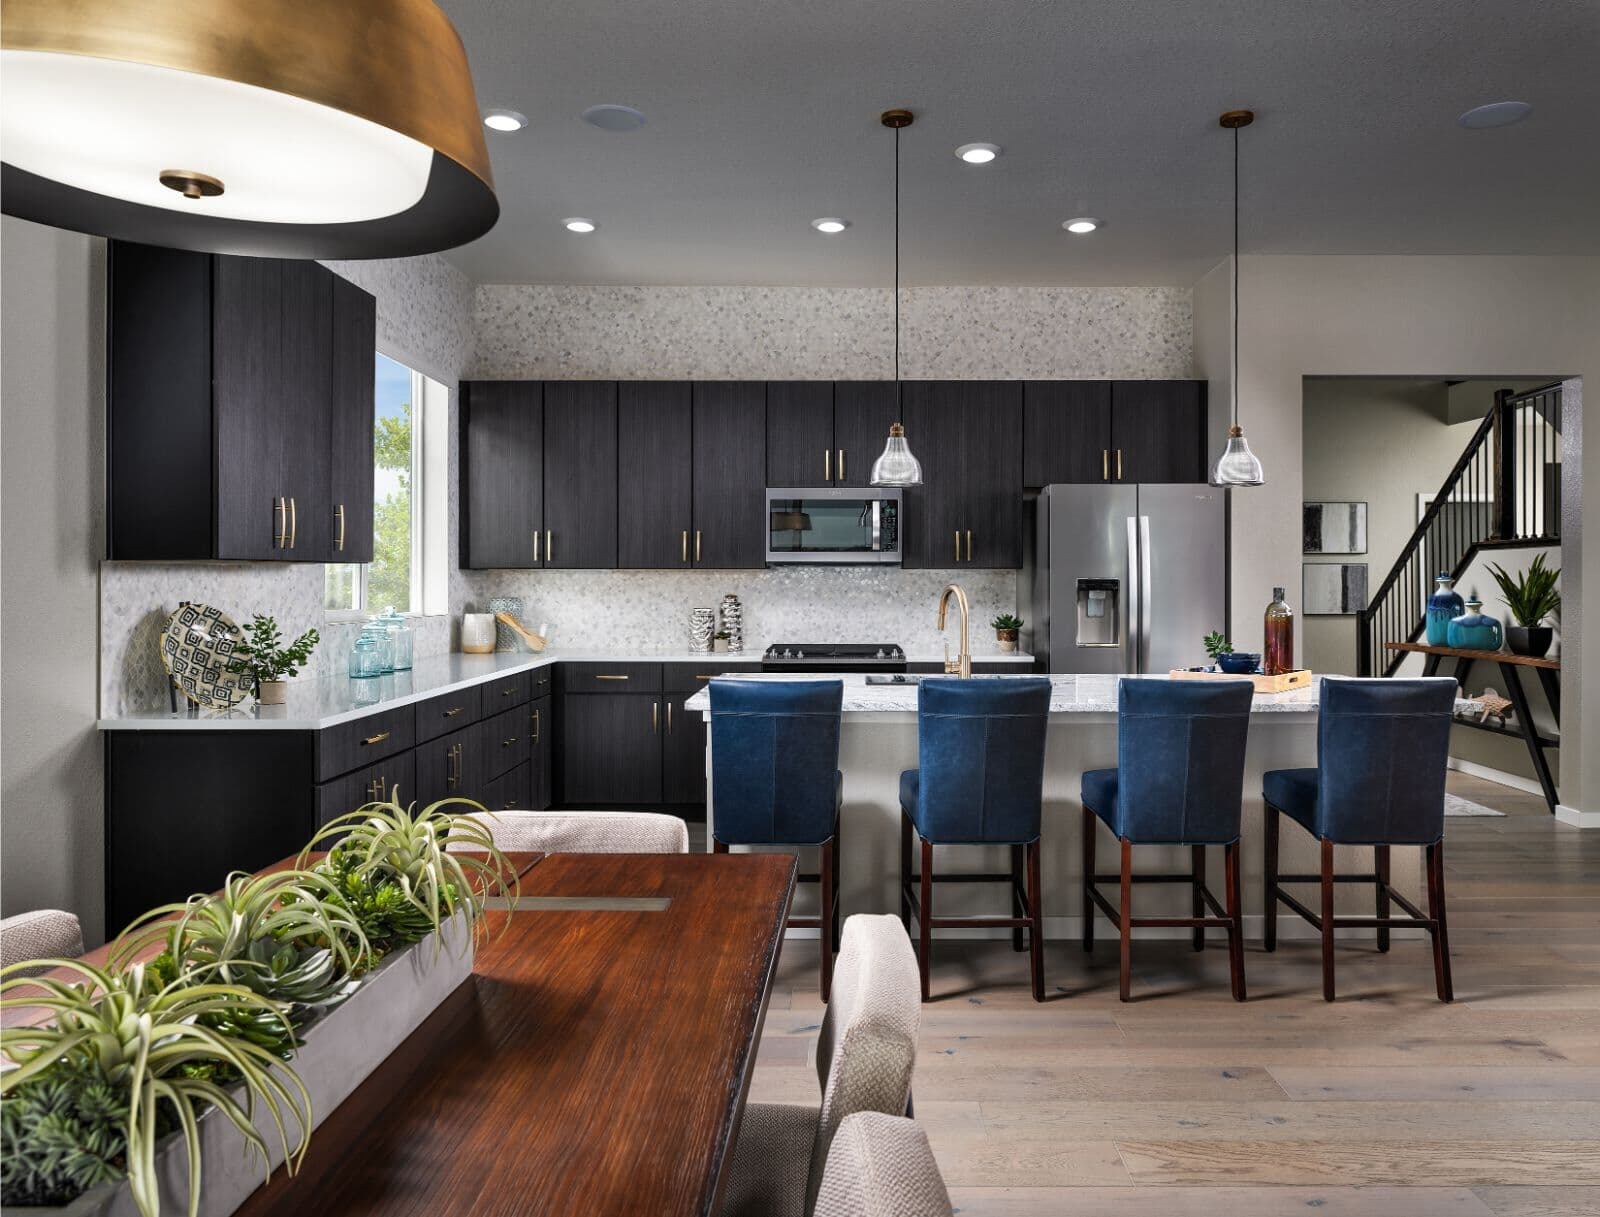 Ovation-Three-Kitchen-Barefoot-Lakes-Denver-Colorado